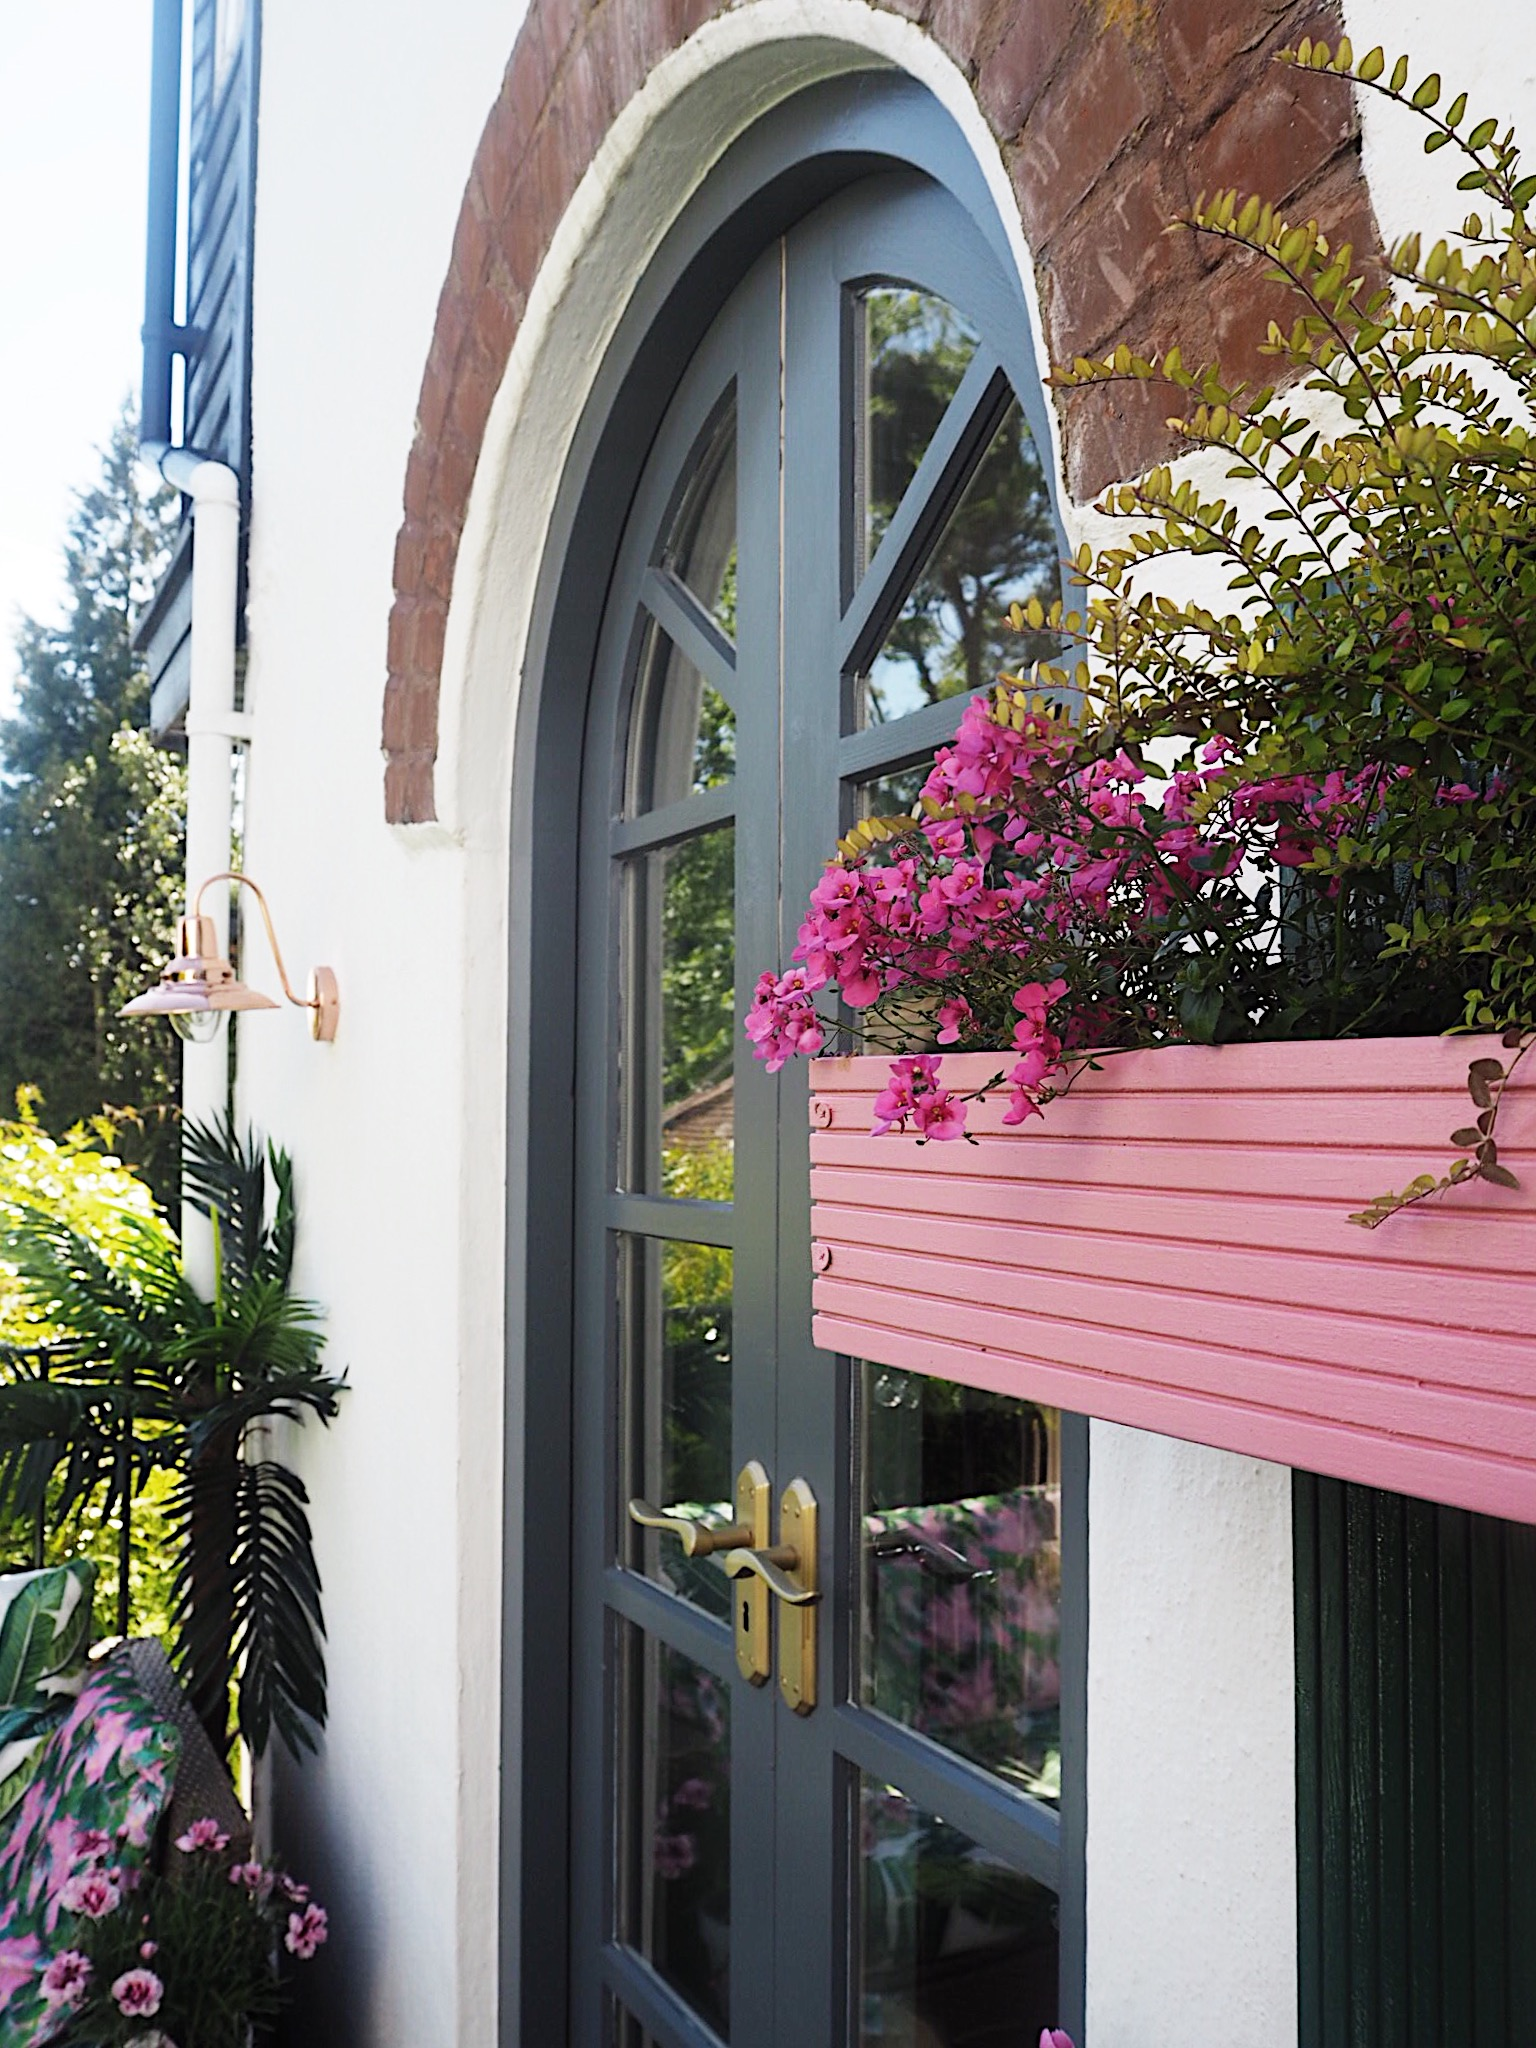 This summer I painted planters pink, and gave the balcony doors a fresh coat of exterior paint.